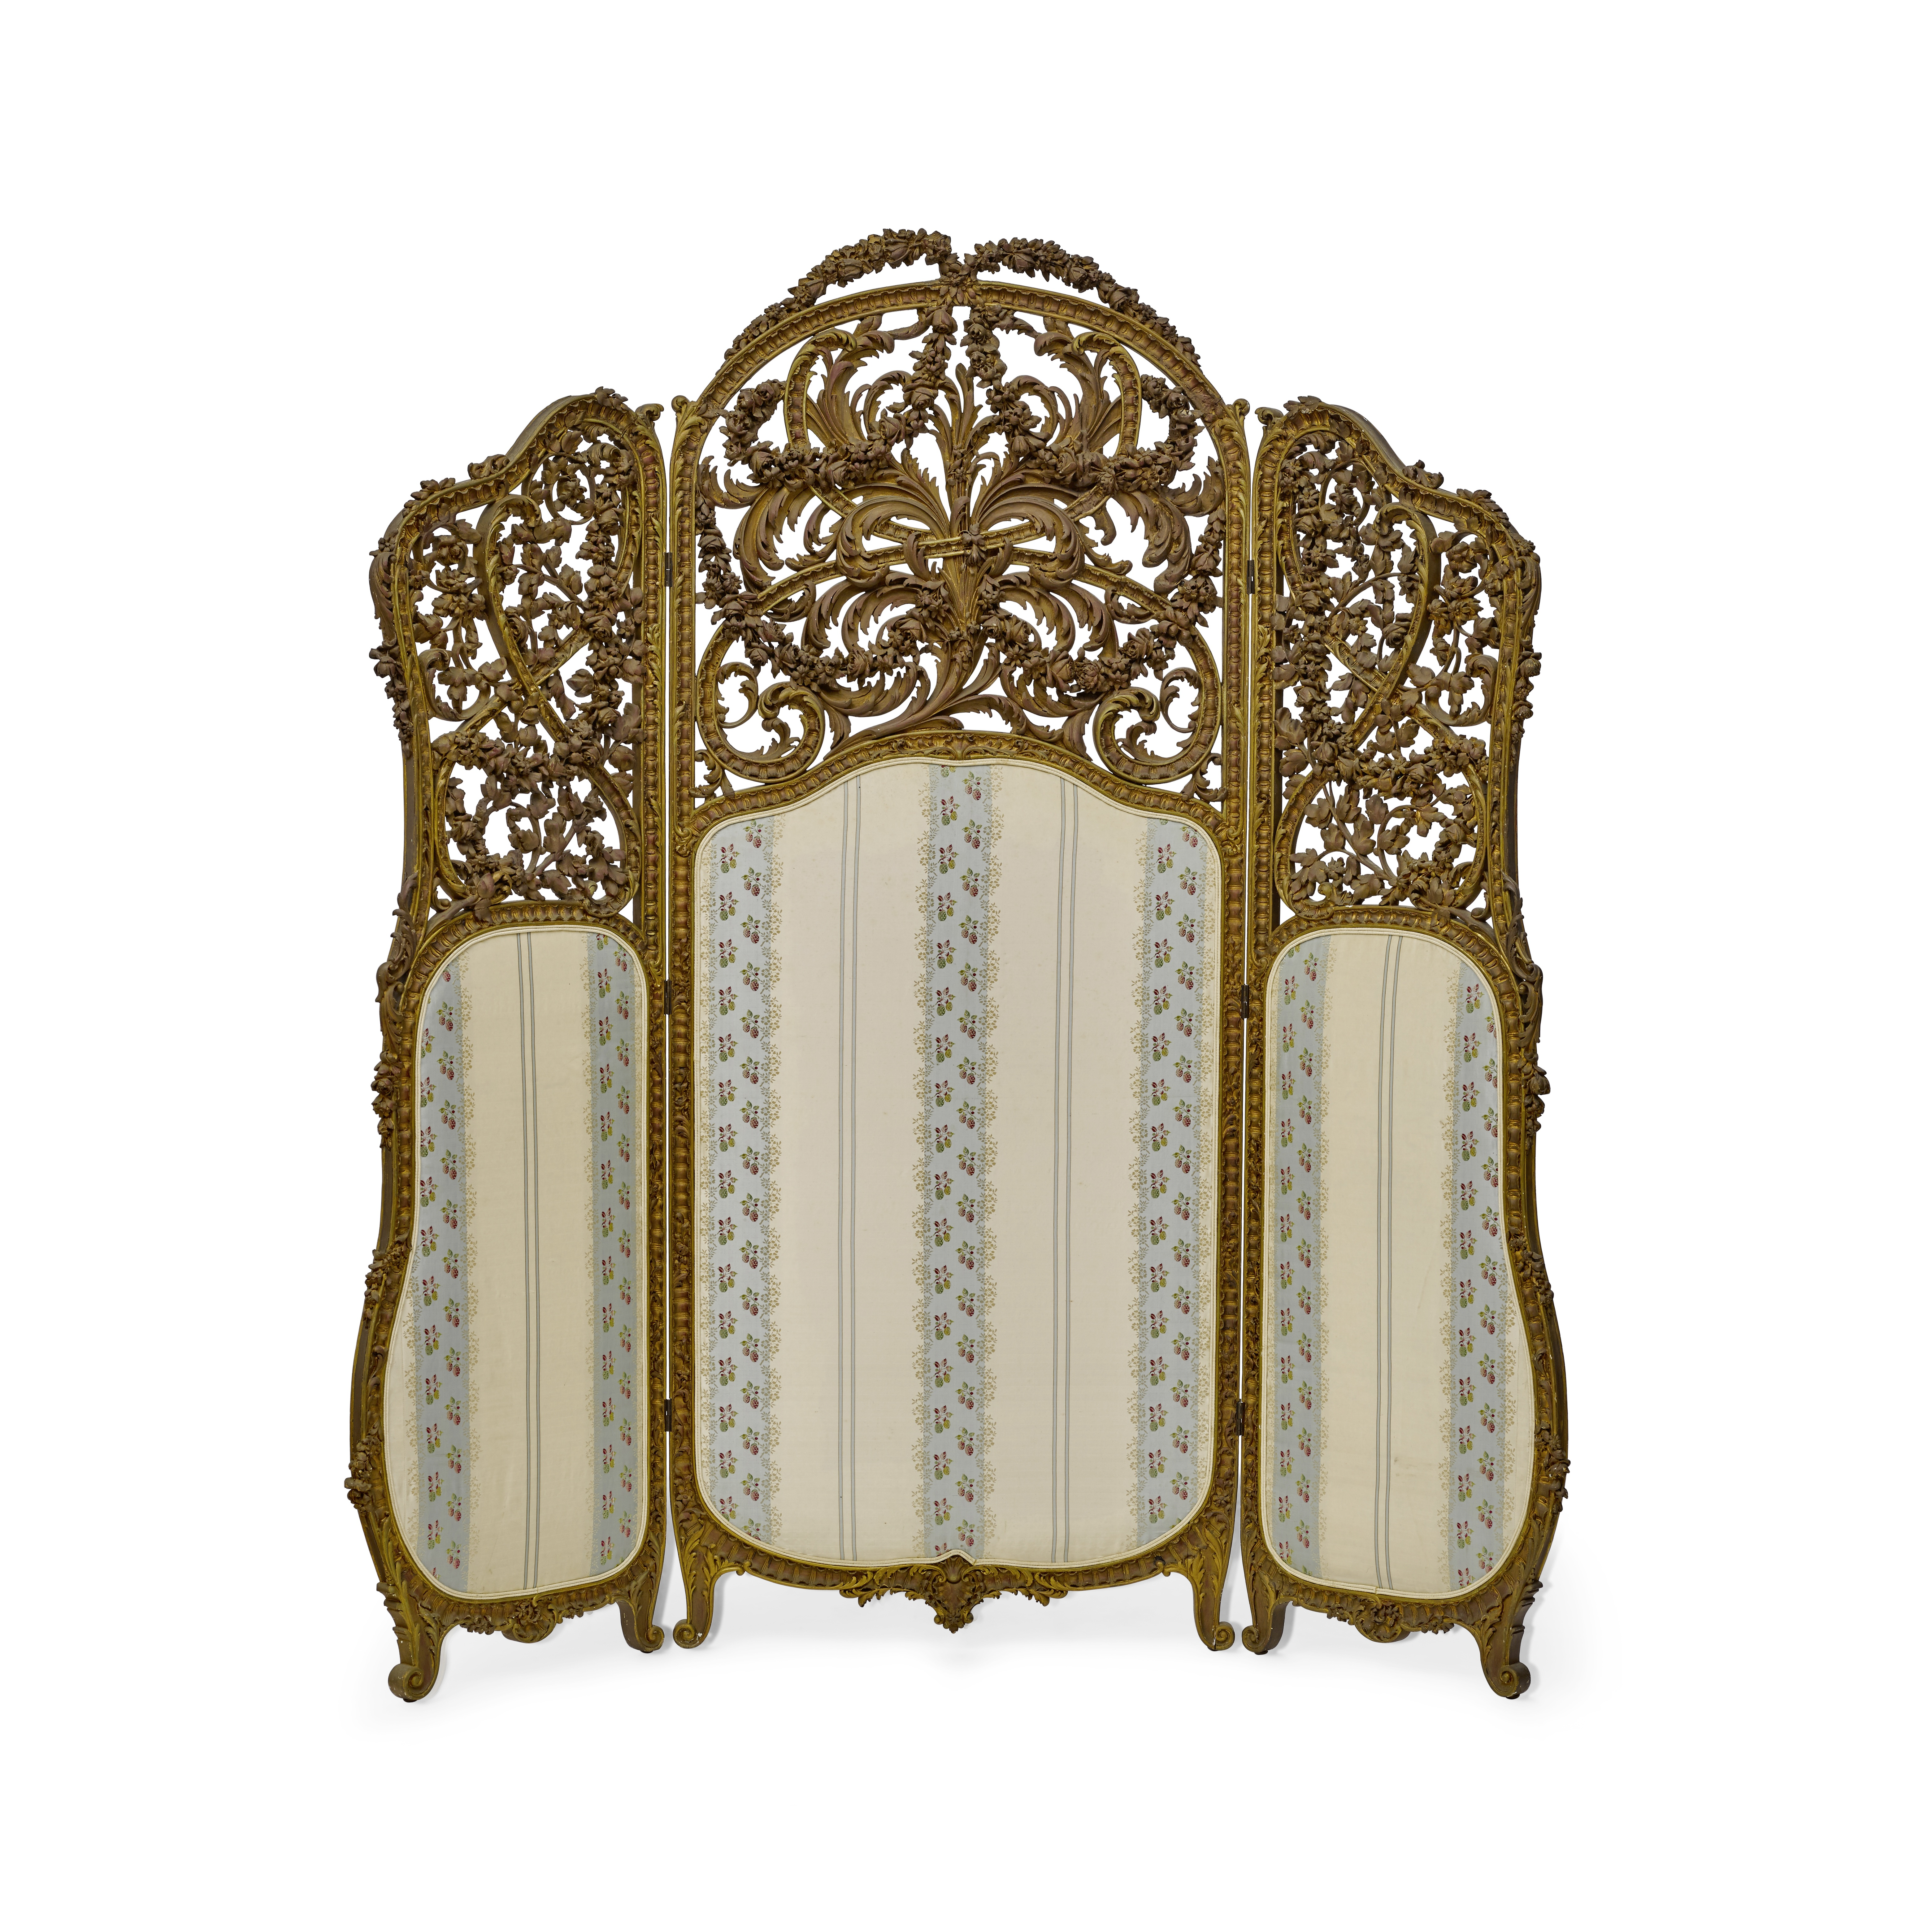 Lot 160 - A Louis XV style giltwood and upholstered three panel screen Late 19th century